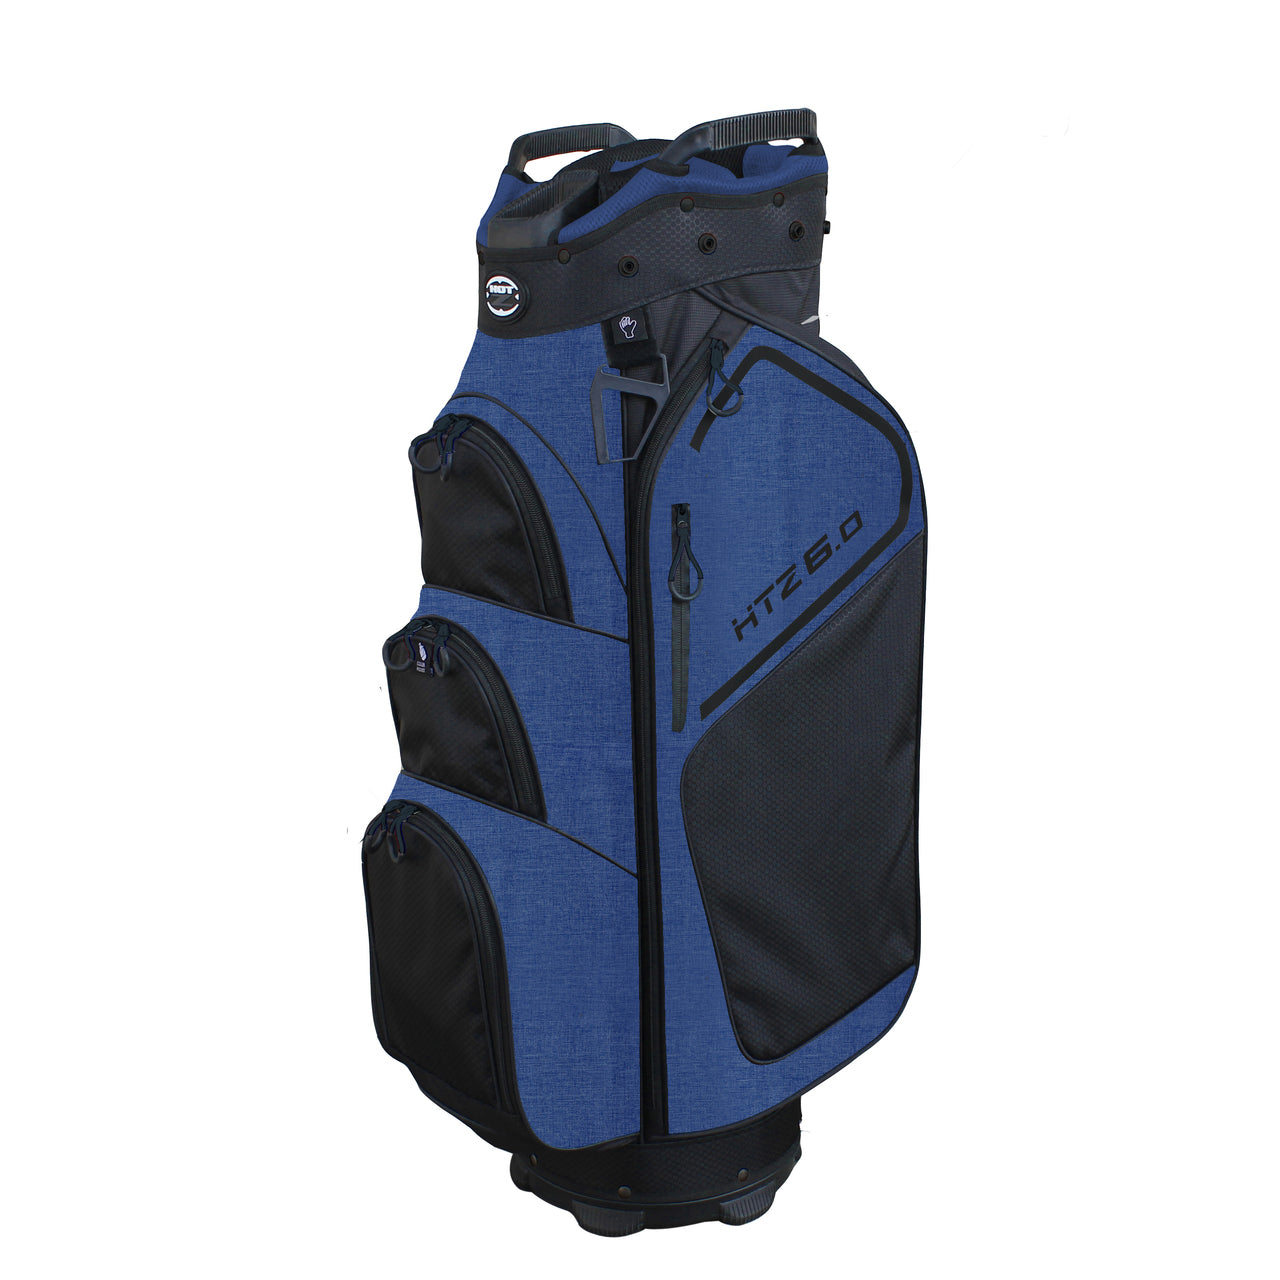 Hot-Z 6.0 Cart Bag